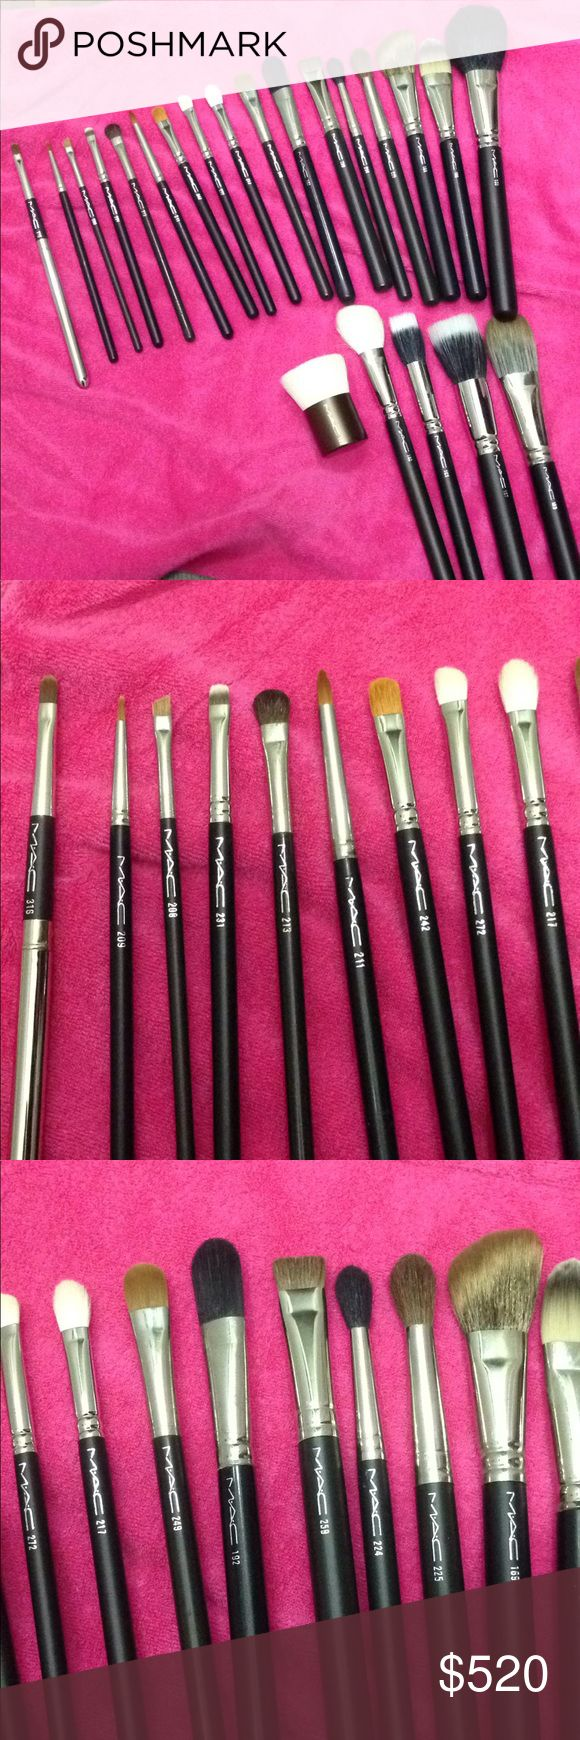 Mac set of 22 brushes Authentic full size Mac set of 22 brushes. All brand new without the sleeves . Check out the flawless bristles. Only flaw is the metal part has some scuffs because these were in a box moving around and they don't have original wrapper on  but bristles intact. Posh concierge will verify authenticity.Will not separate and price is firm. NO OFFERS ACCEPTED Brush# 183, 189, 209, 213, 259, 188, 231, 208, 187, 169, 272, 190, 192, 242, 249, 211, 217, 168, 225, 150 and 316 lip…